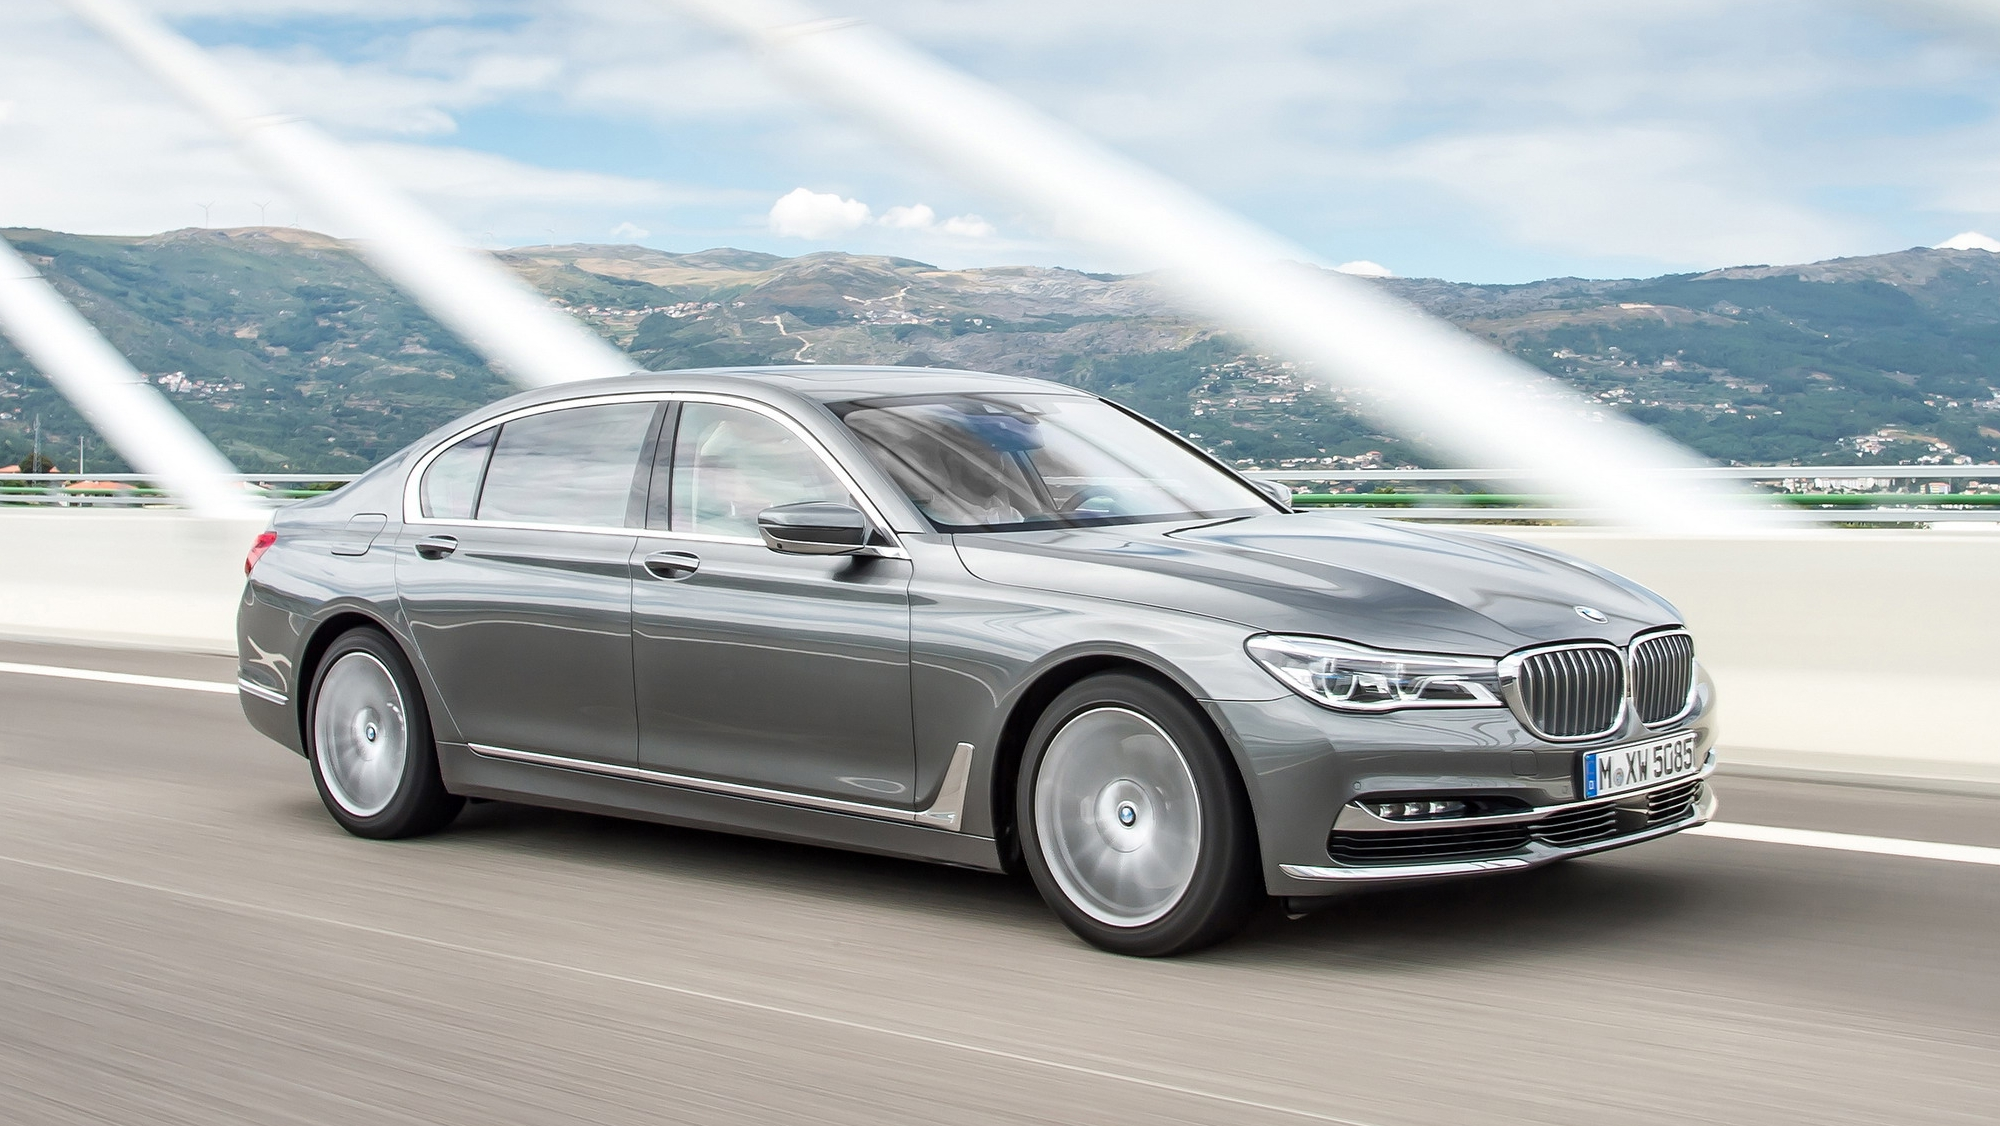 2017 BMW 750d XDrive And 750Ld Review